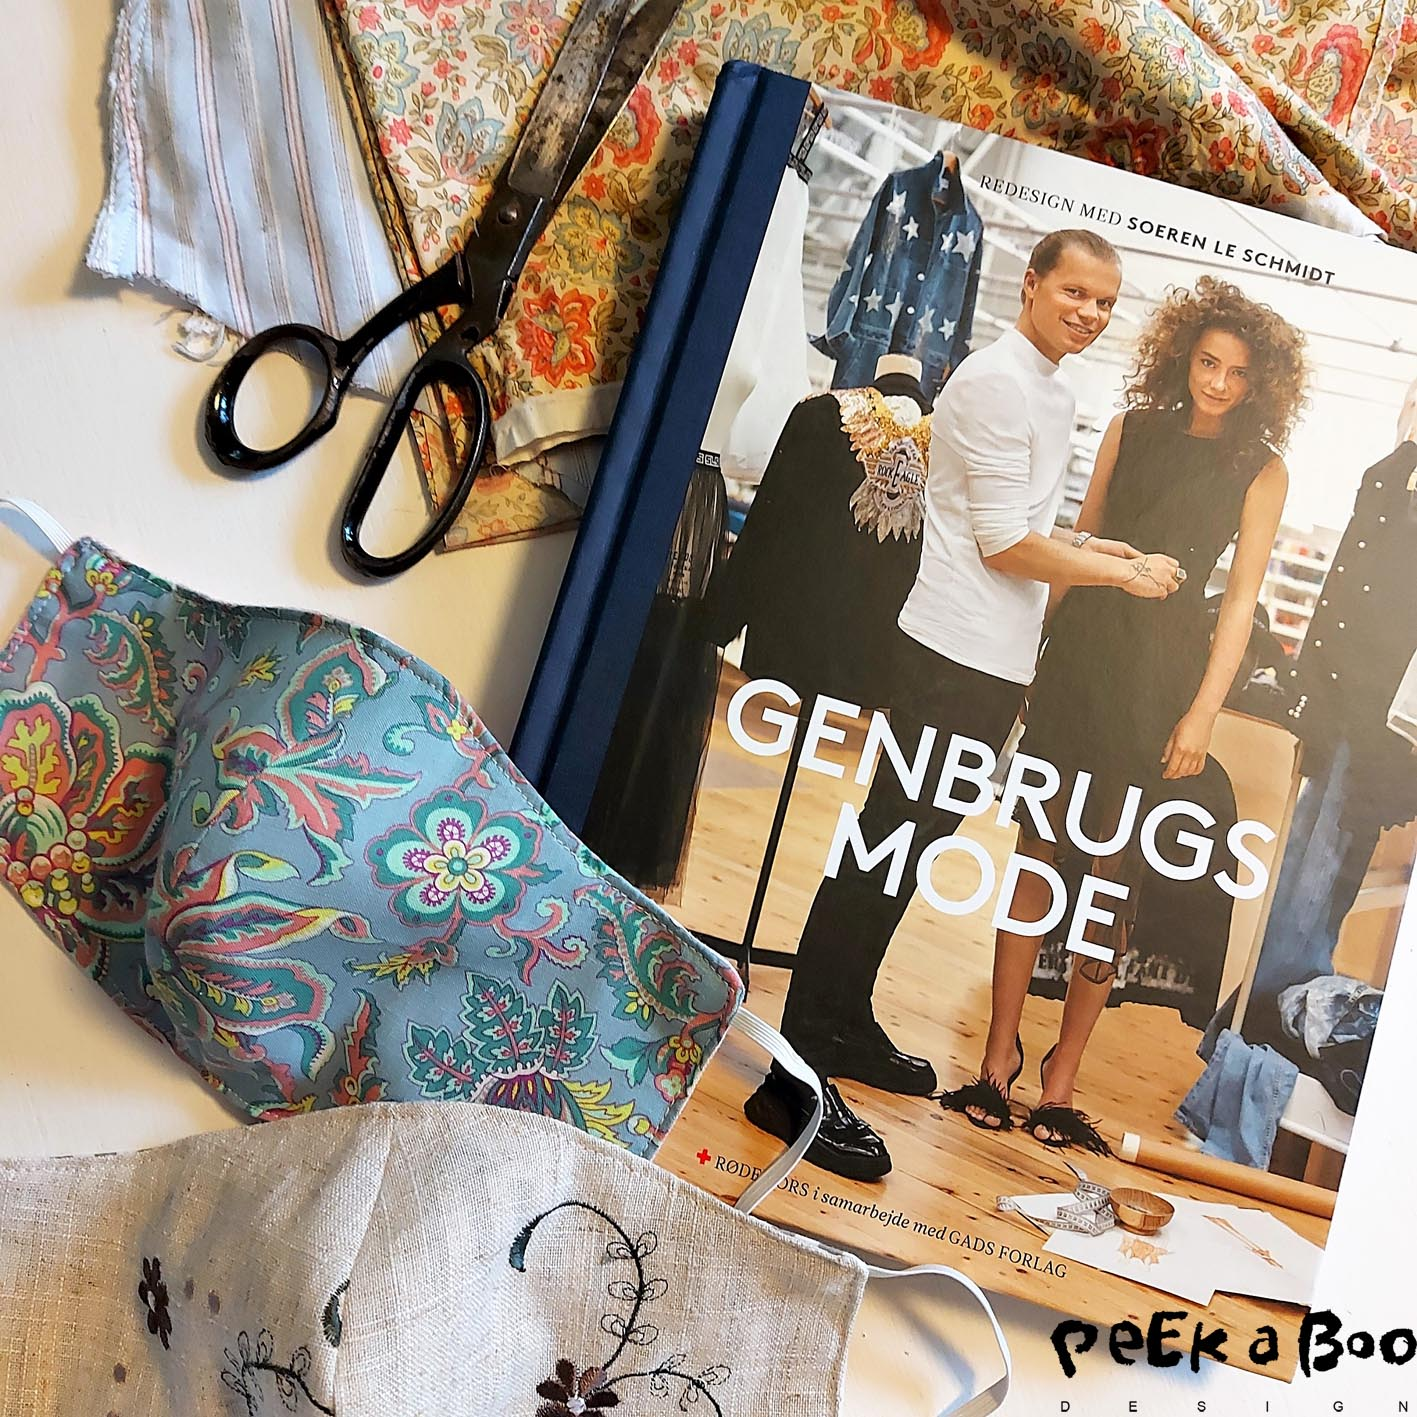 "The new book ""Genbrugs mode"" is made in cooperation with Røde Kors / red cross and the designer Soeren Le Schmidt. It gives you ideas on how to upcycle for a trendy wardrobe."